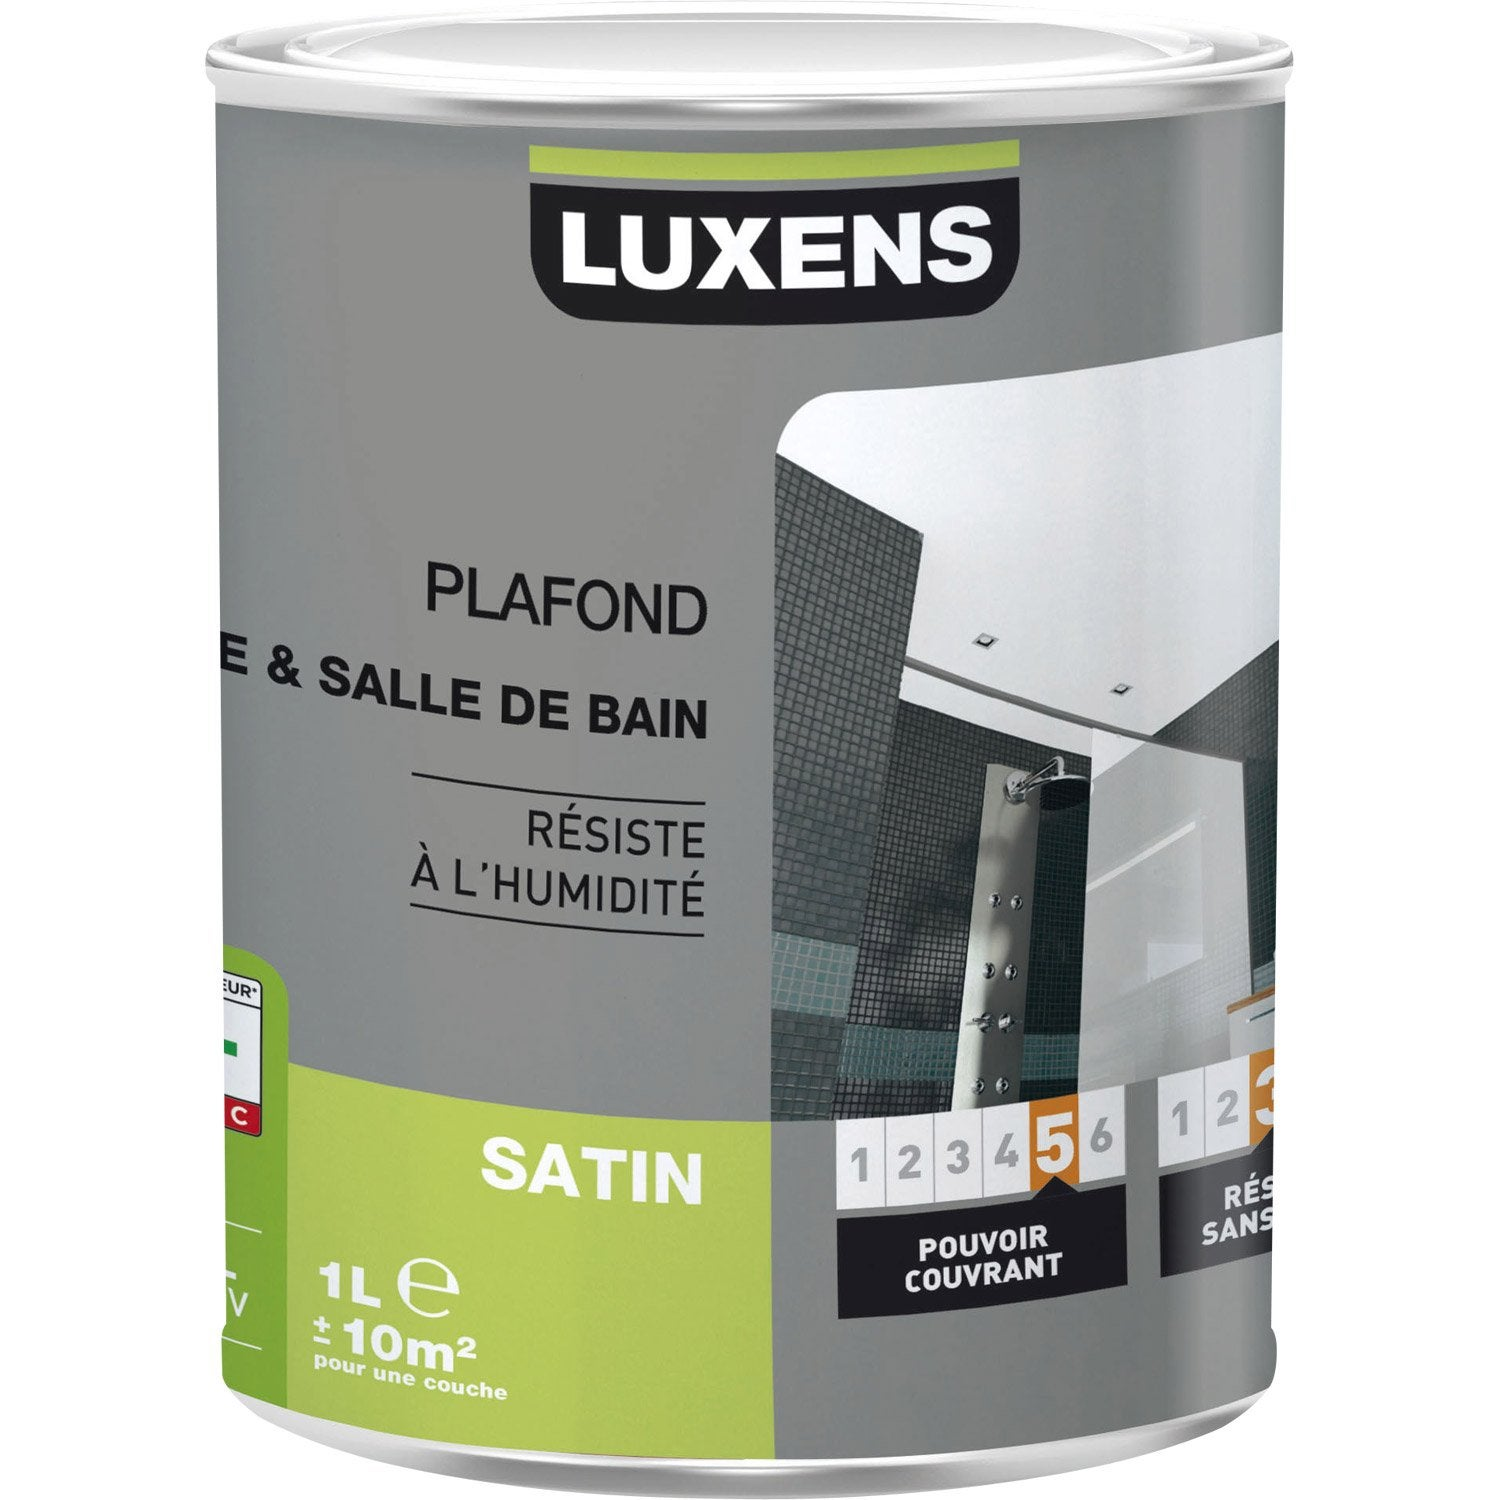 peinture blanche plafond plafond cuisine et bains luxens satin 1 l leroy merlin. Black Bedroom Furniture Sets. Home Design Ideas